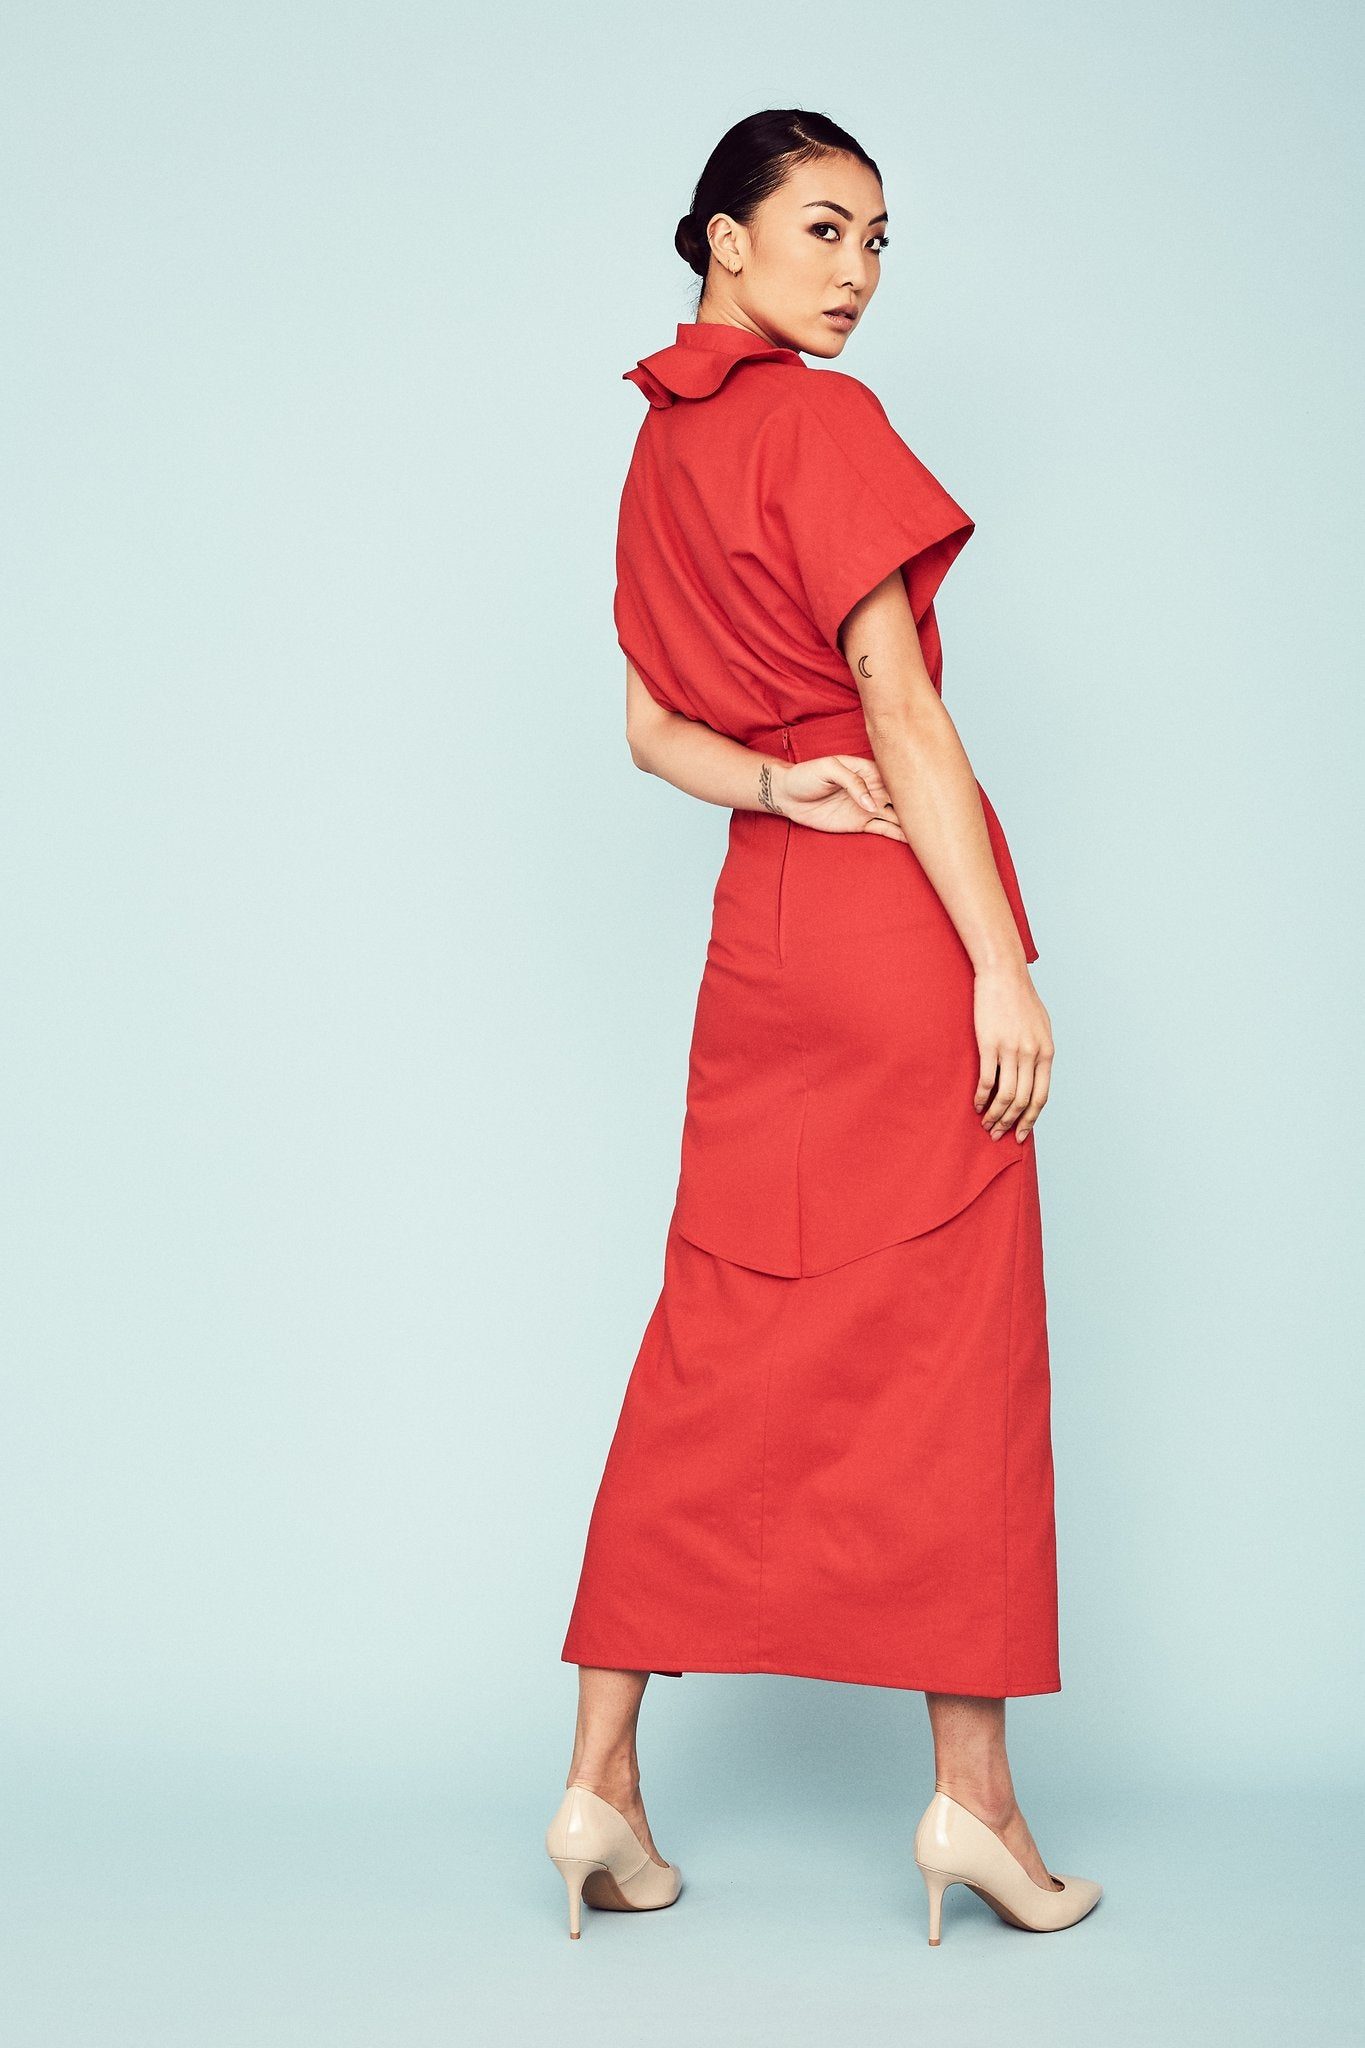 Red Divina Skirt Skirts The Fashion Advocate ethical Australian fashion designer boutique Melbourne sustainable clothes